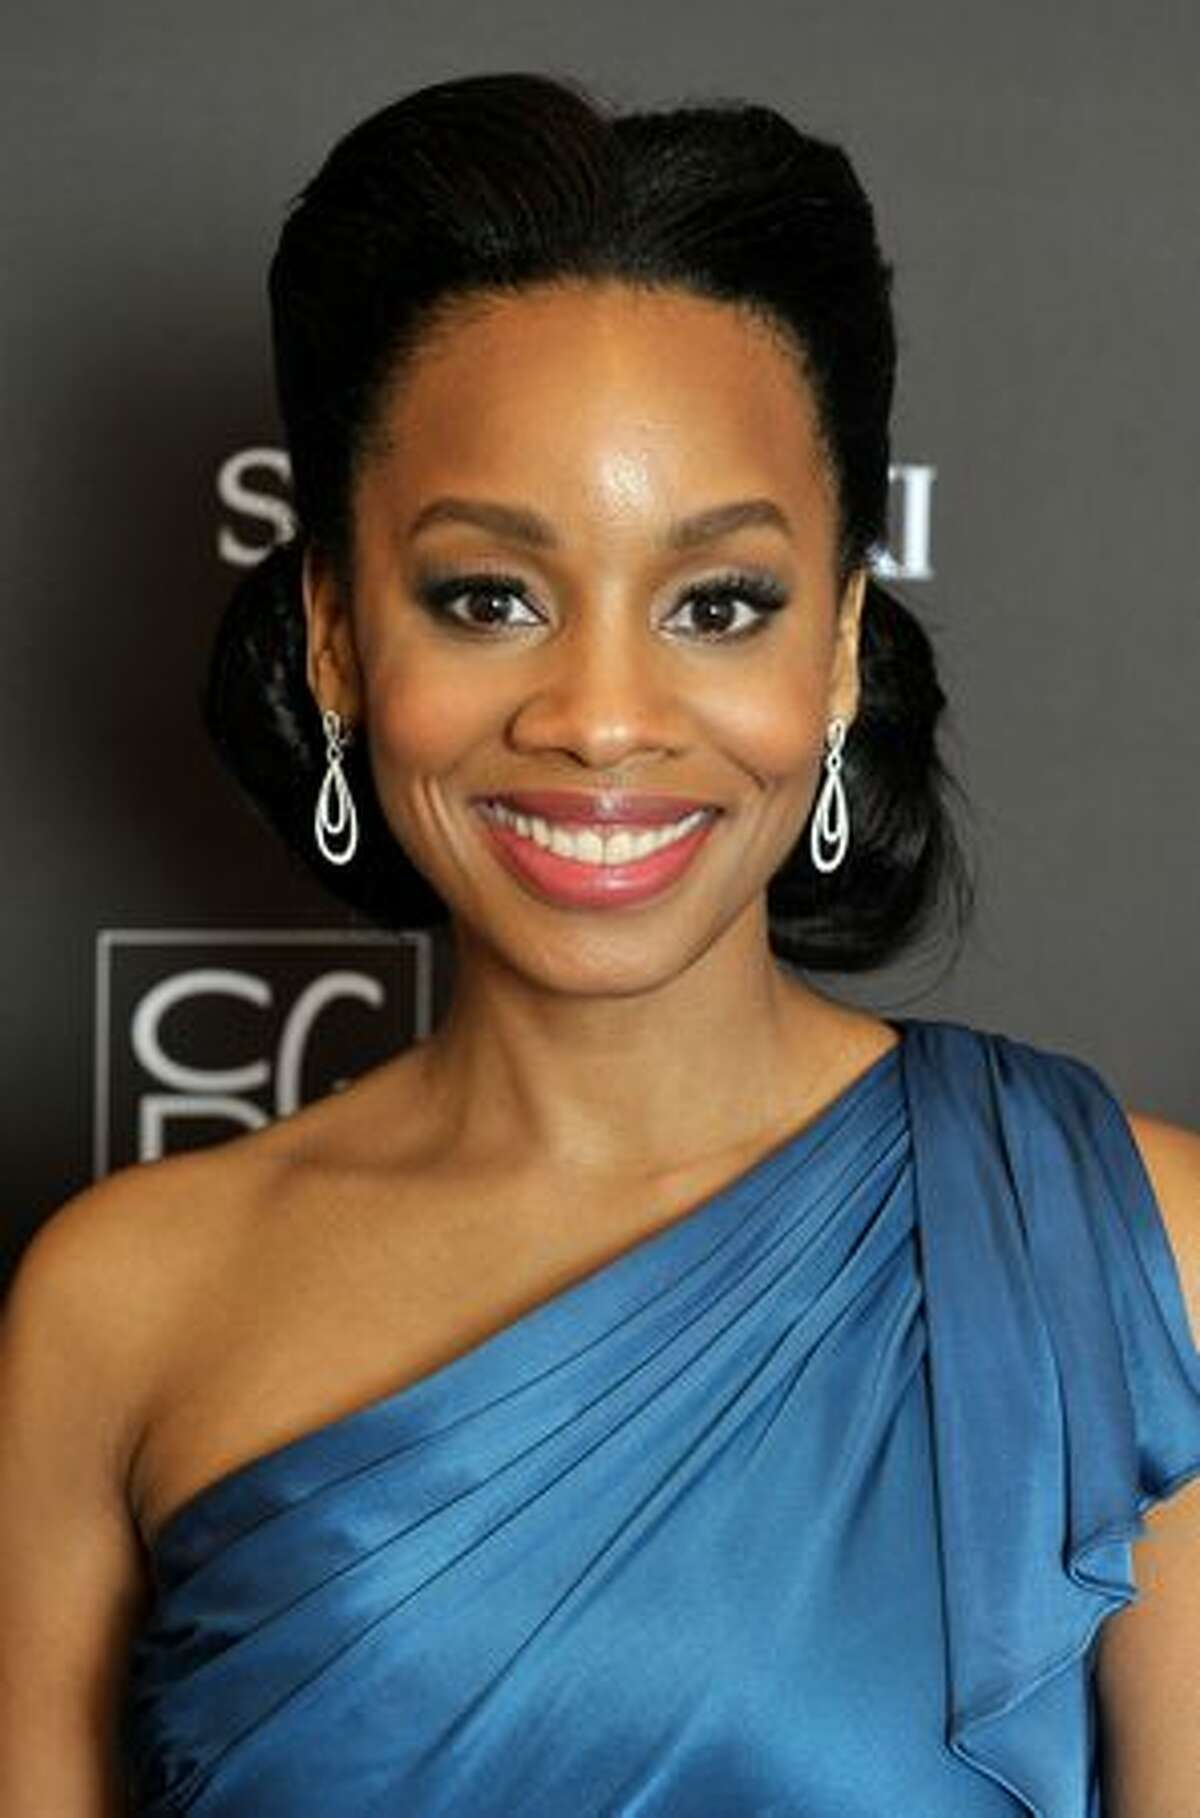 Actress Anika Noni Rose backstage during the 12th Annual Costume Designers Guild Awards with Presenting Sponsor Swarovski at The Beverly Hilton hotel in Beverly Hills, California.